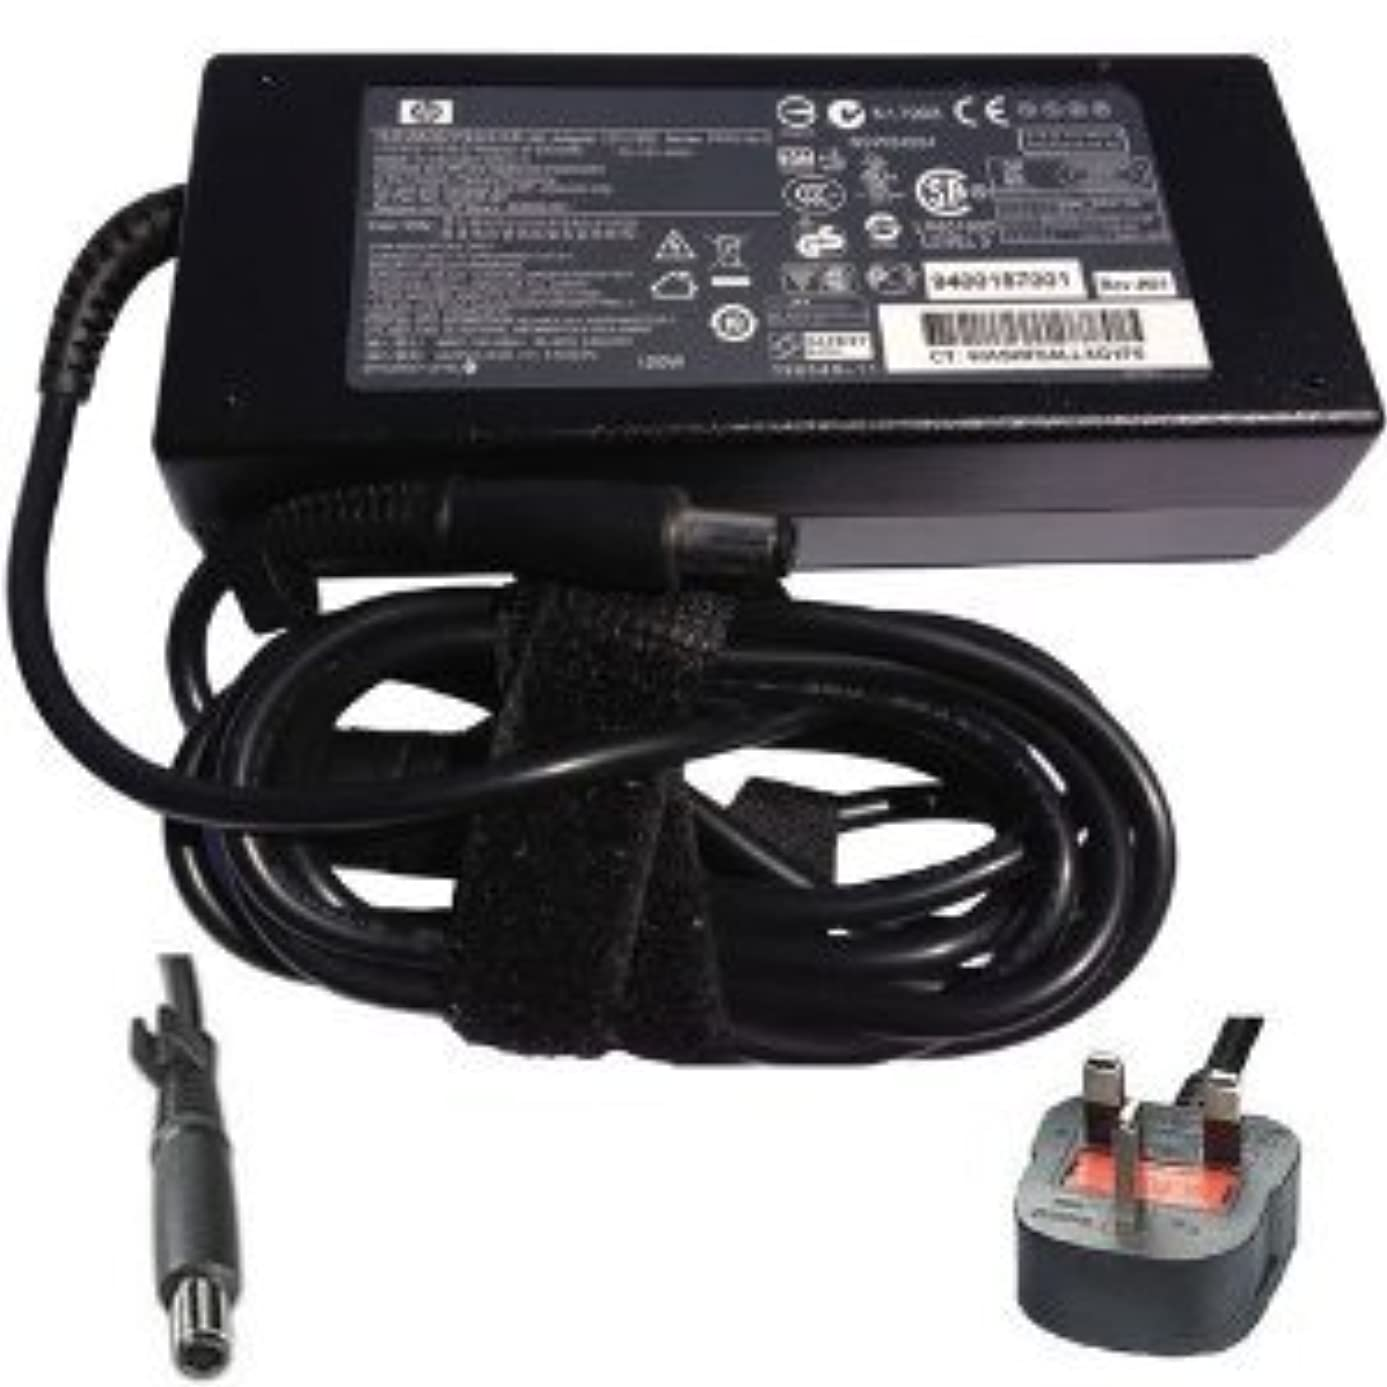 HP 463953-001 18.5V 6.5A 120W AC ADAPTER FOR NC, NX, ZX7000